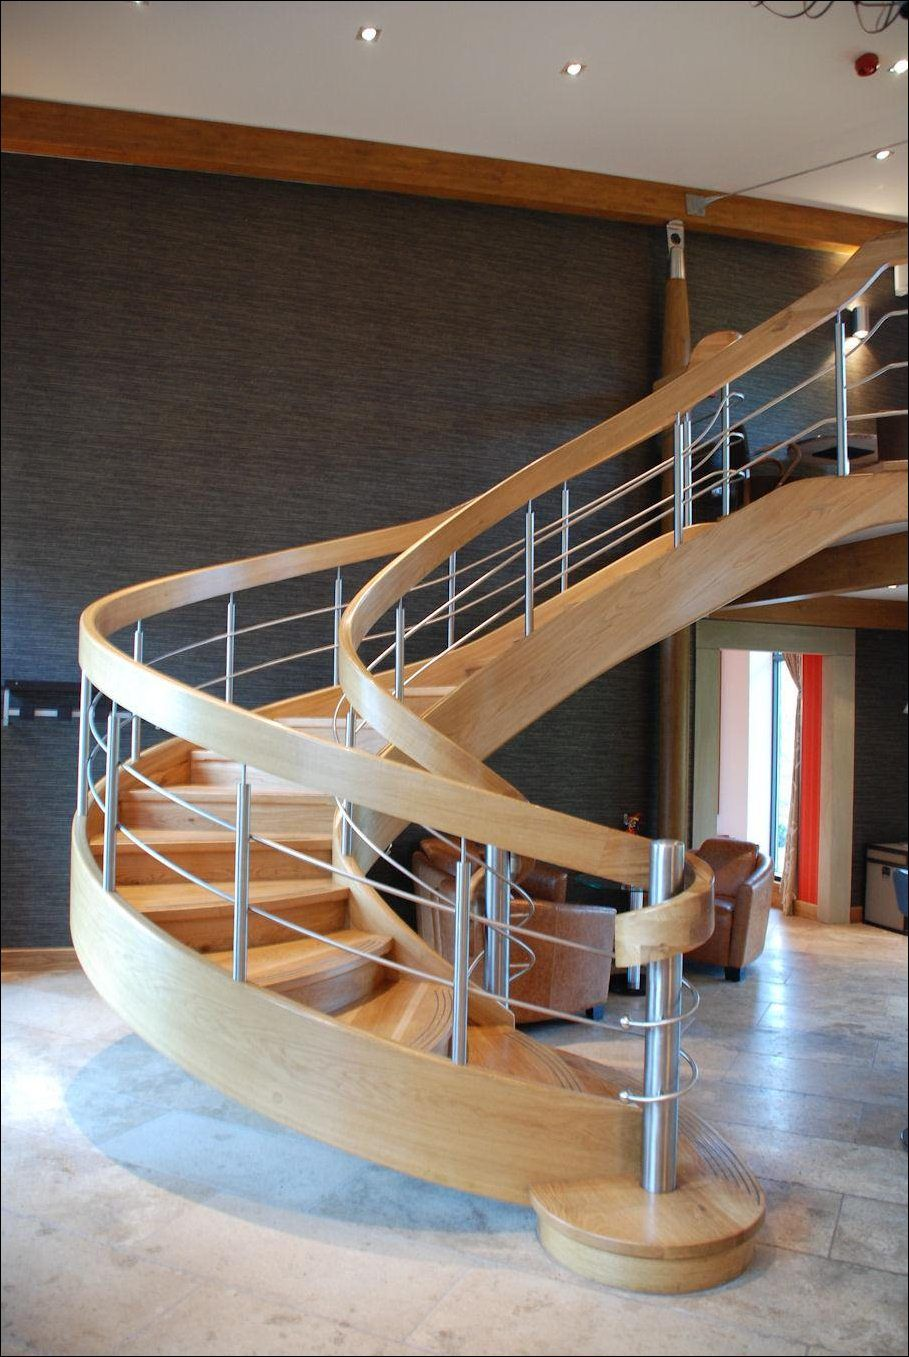 DecorationsDazzling Modern Wooden Spiral Staircase Designs On Brown